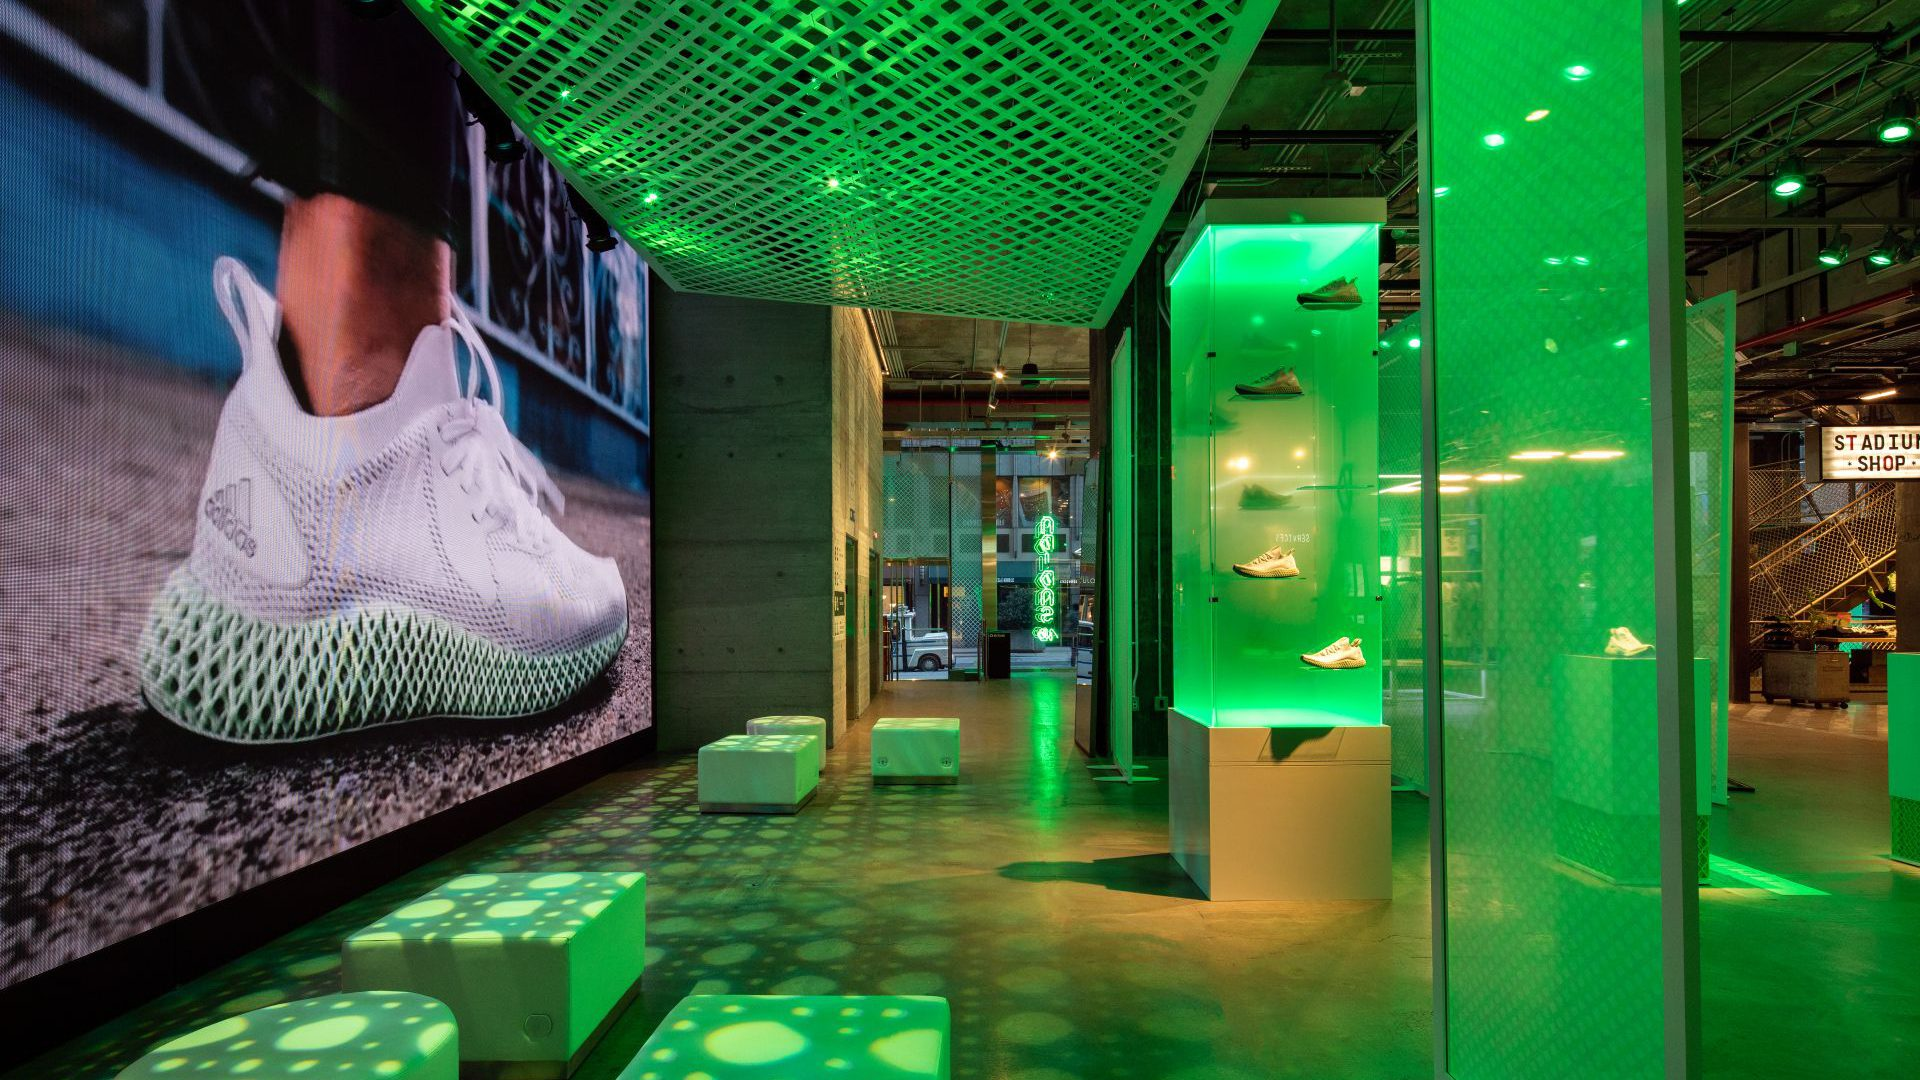 The Ultimate Partnership Experience; Retail, Environment, Exhibit and Event Branding